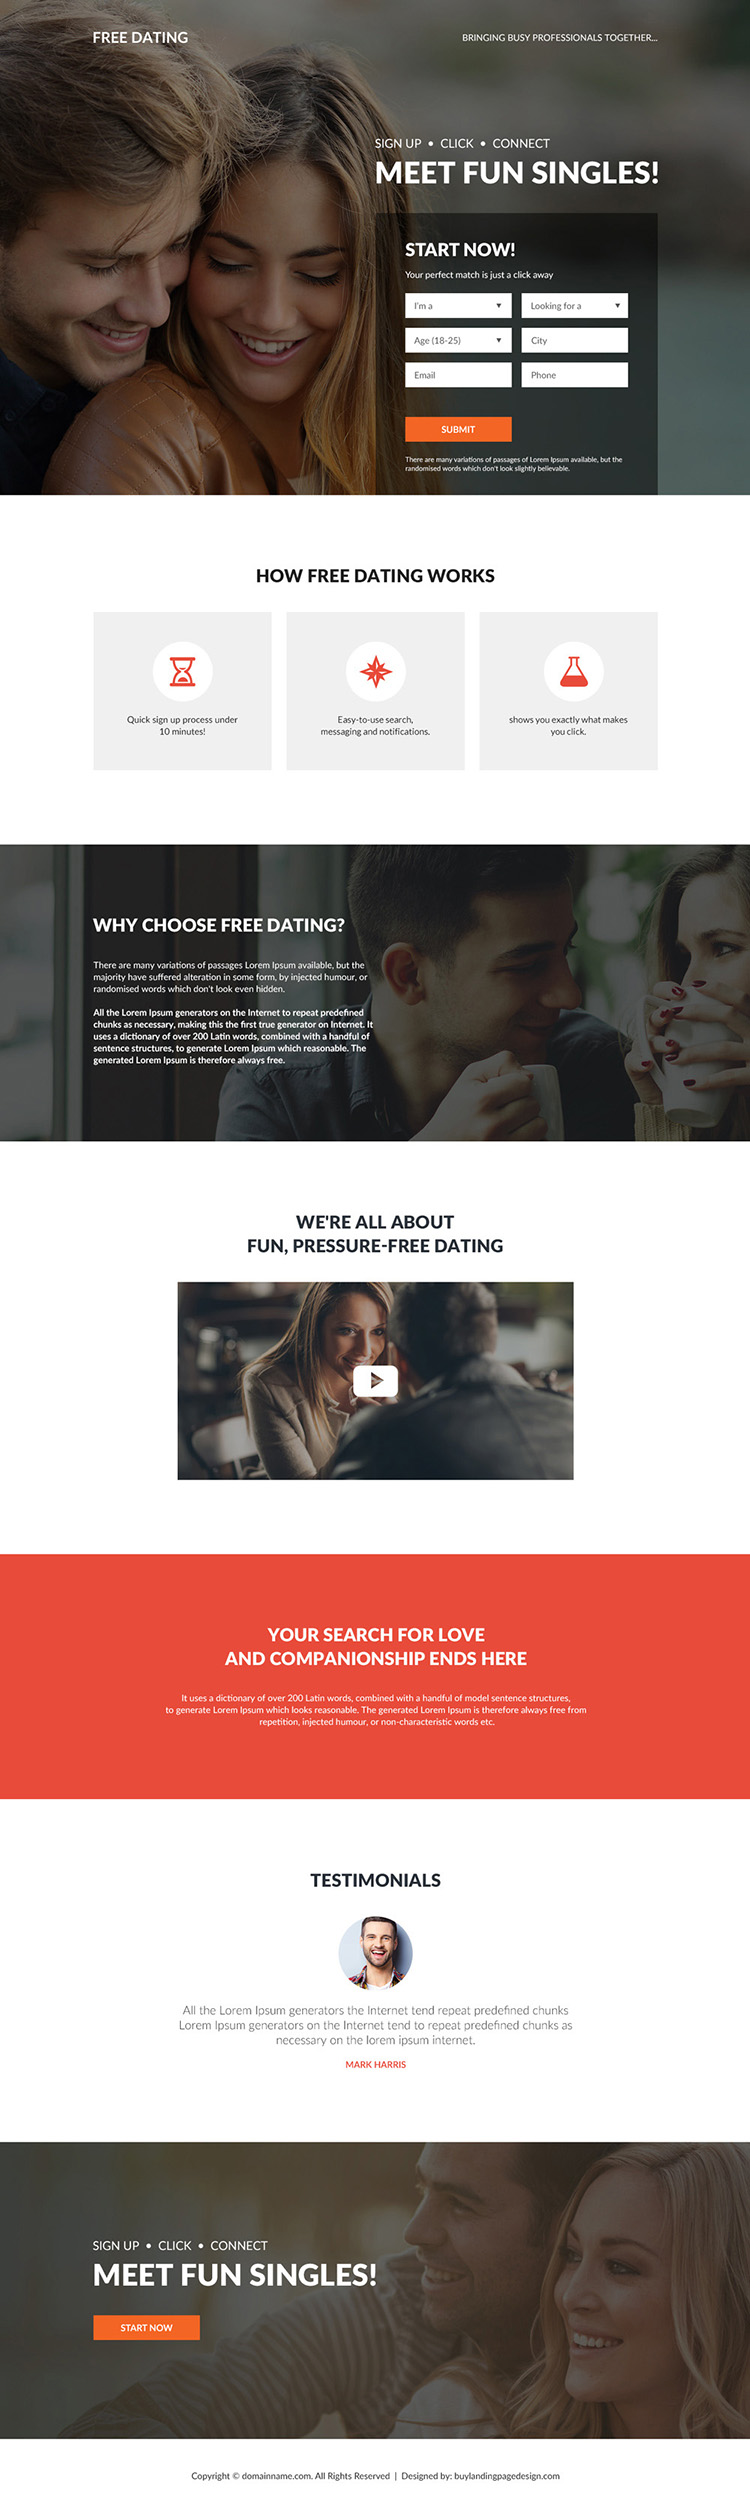 free dating sign up capturing bootstrap landing page design